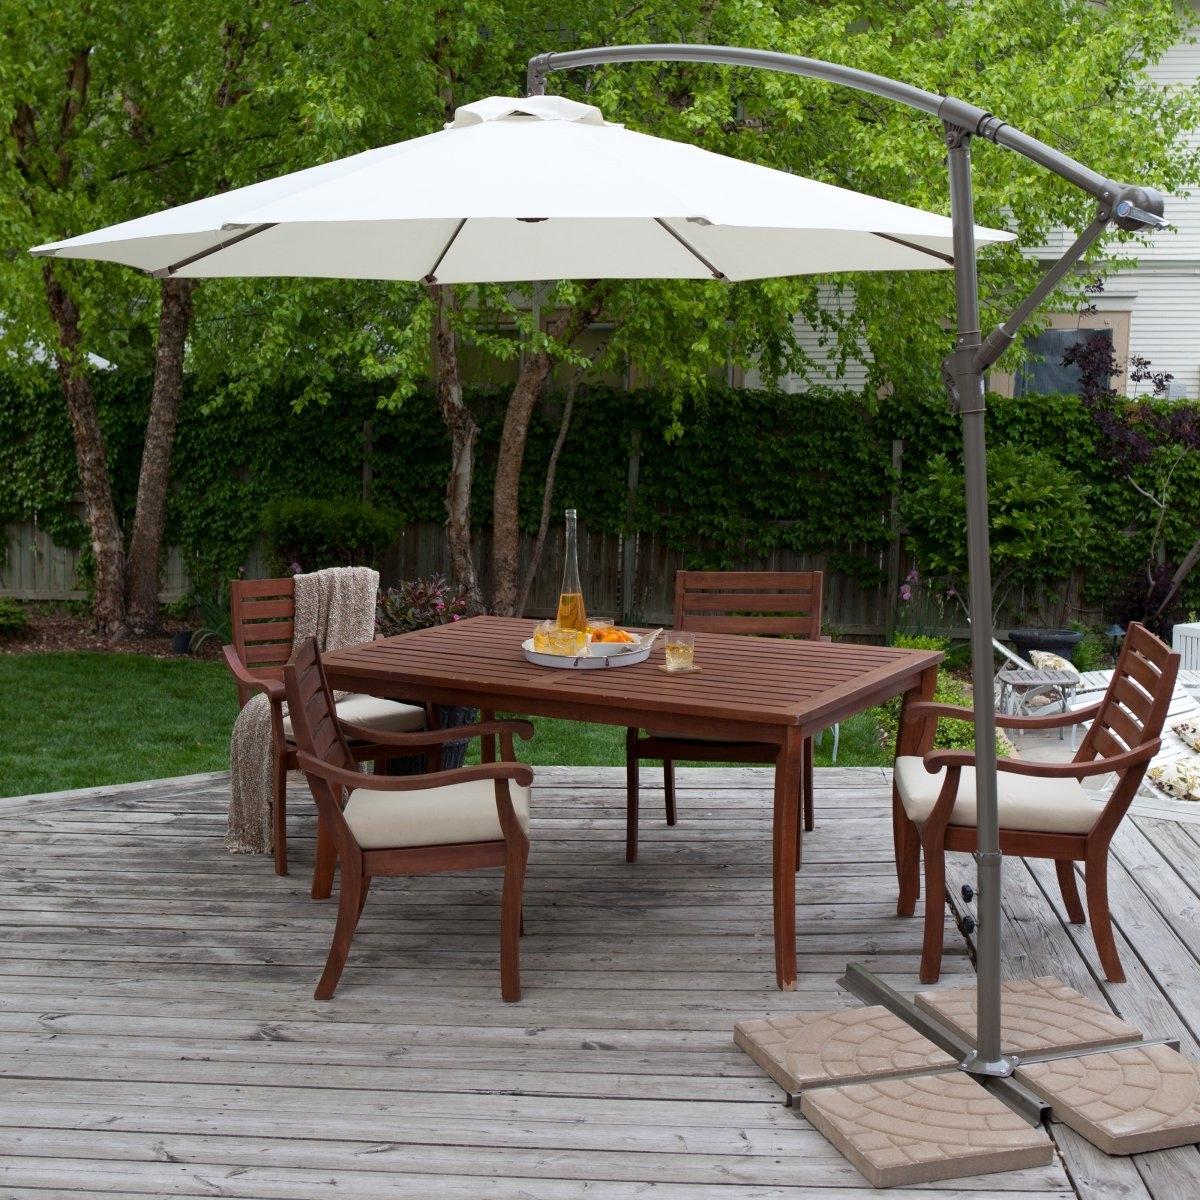 Patio Tables With Umbrella Hole With Regard To Most Up To Date The Patio Table Umbrella For Comfort Gathering — Mistikcamping Home (View 15 of 20)